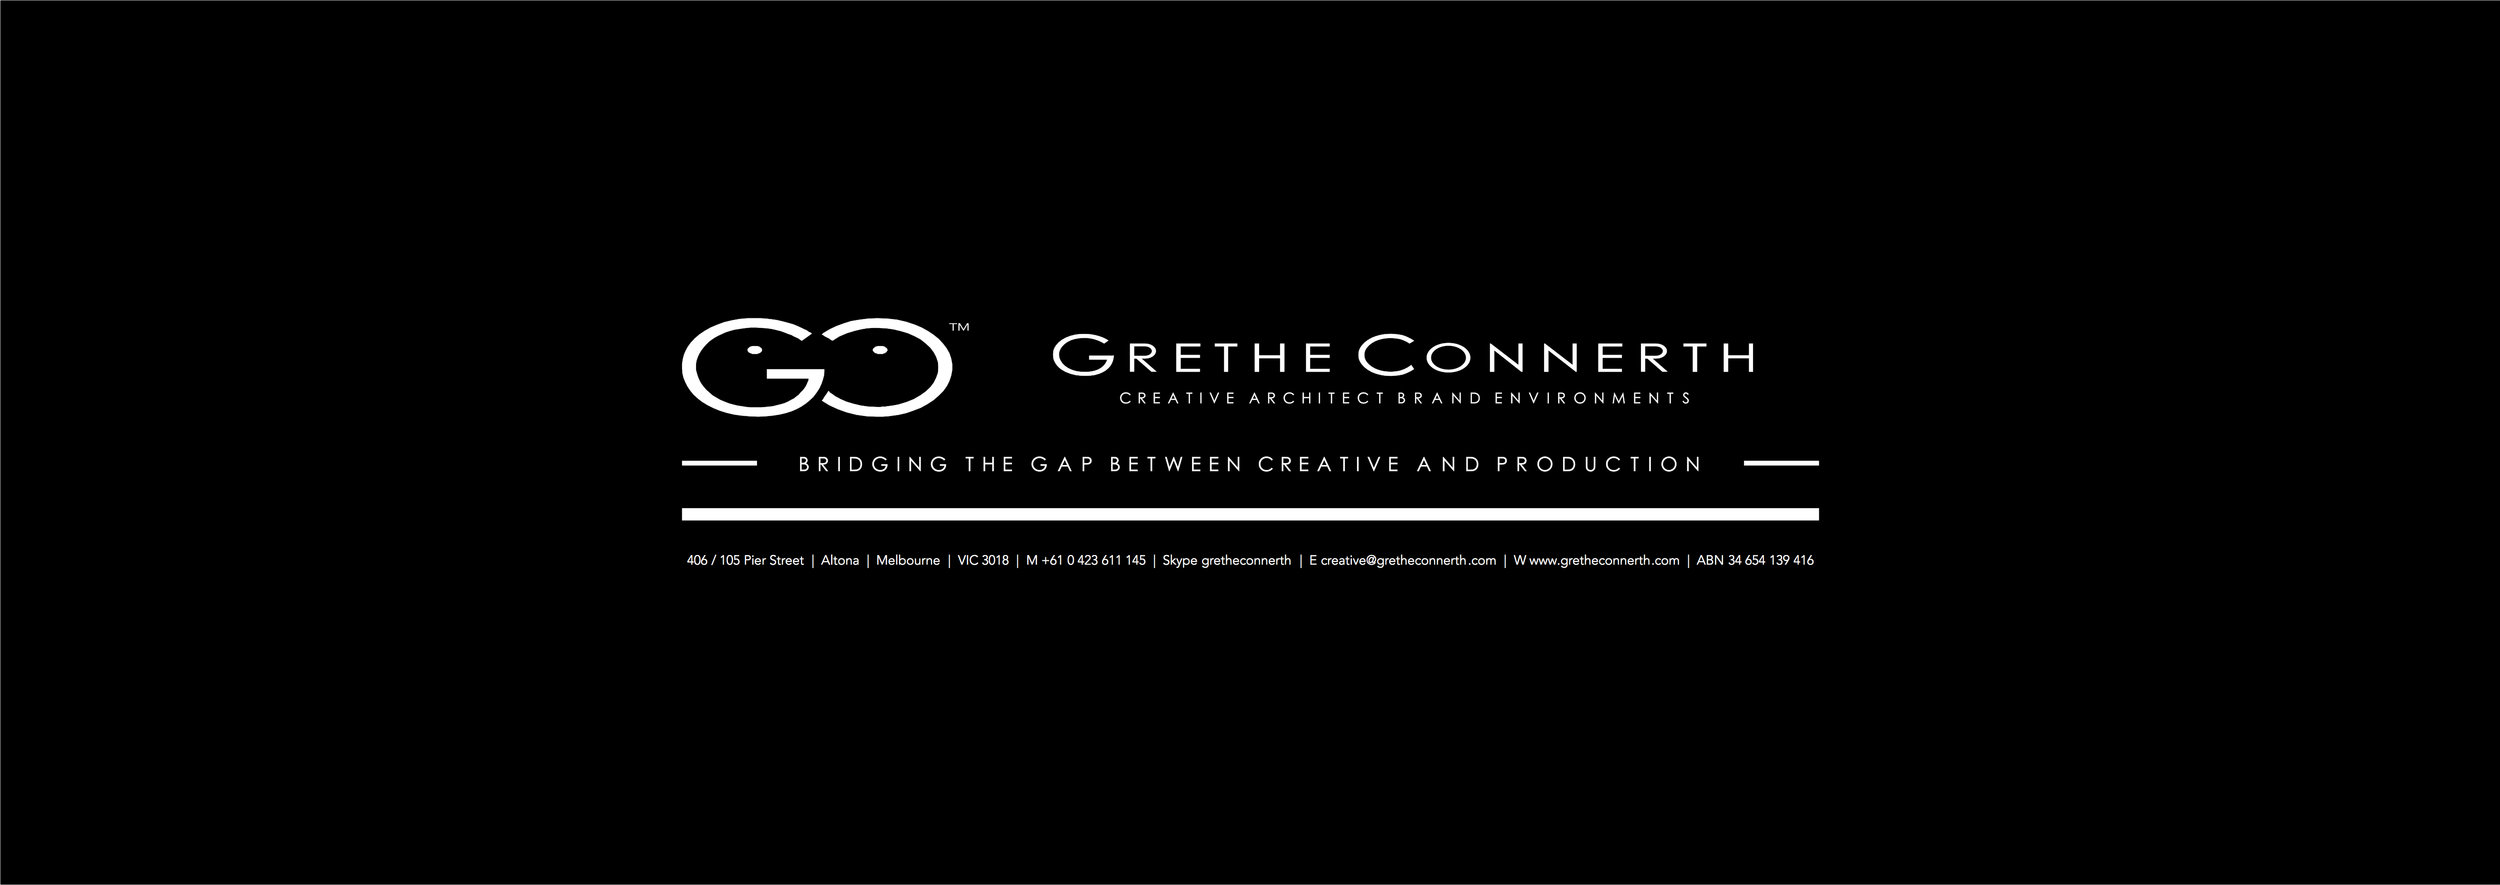 Grethe+Connerth+Trade+Show+Displays+Expo+Booth+Exhibition+Display+Design+Digital+Banner+Print+Expo+Booth+Gallery+Museum+Retail+Brand+Academy+Portfolio+23.jpg